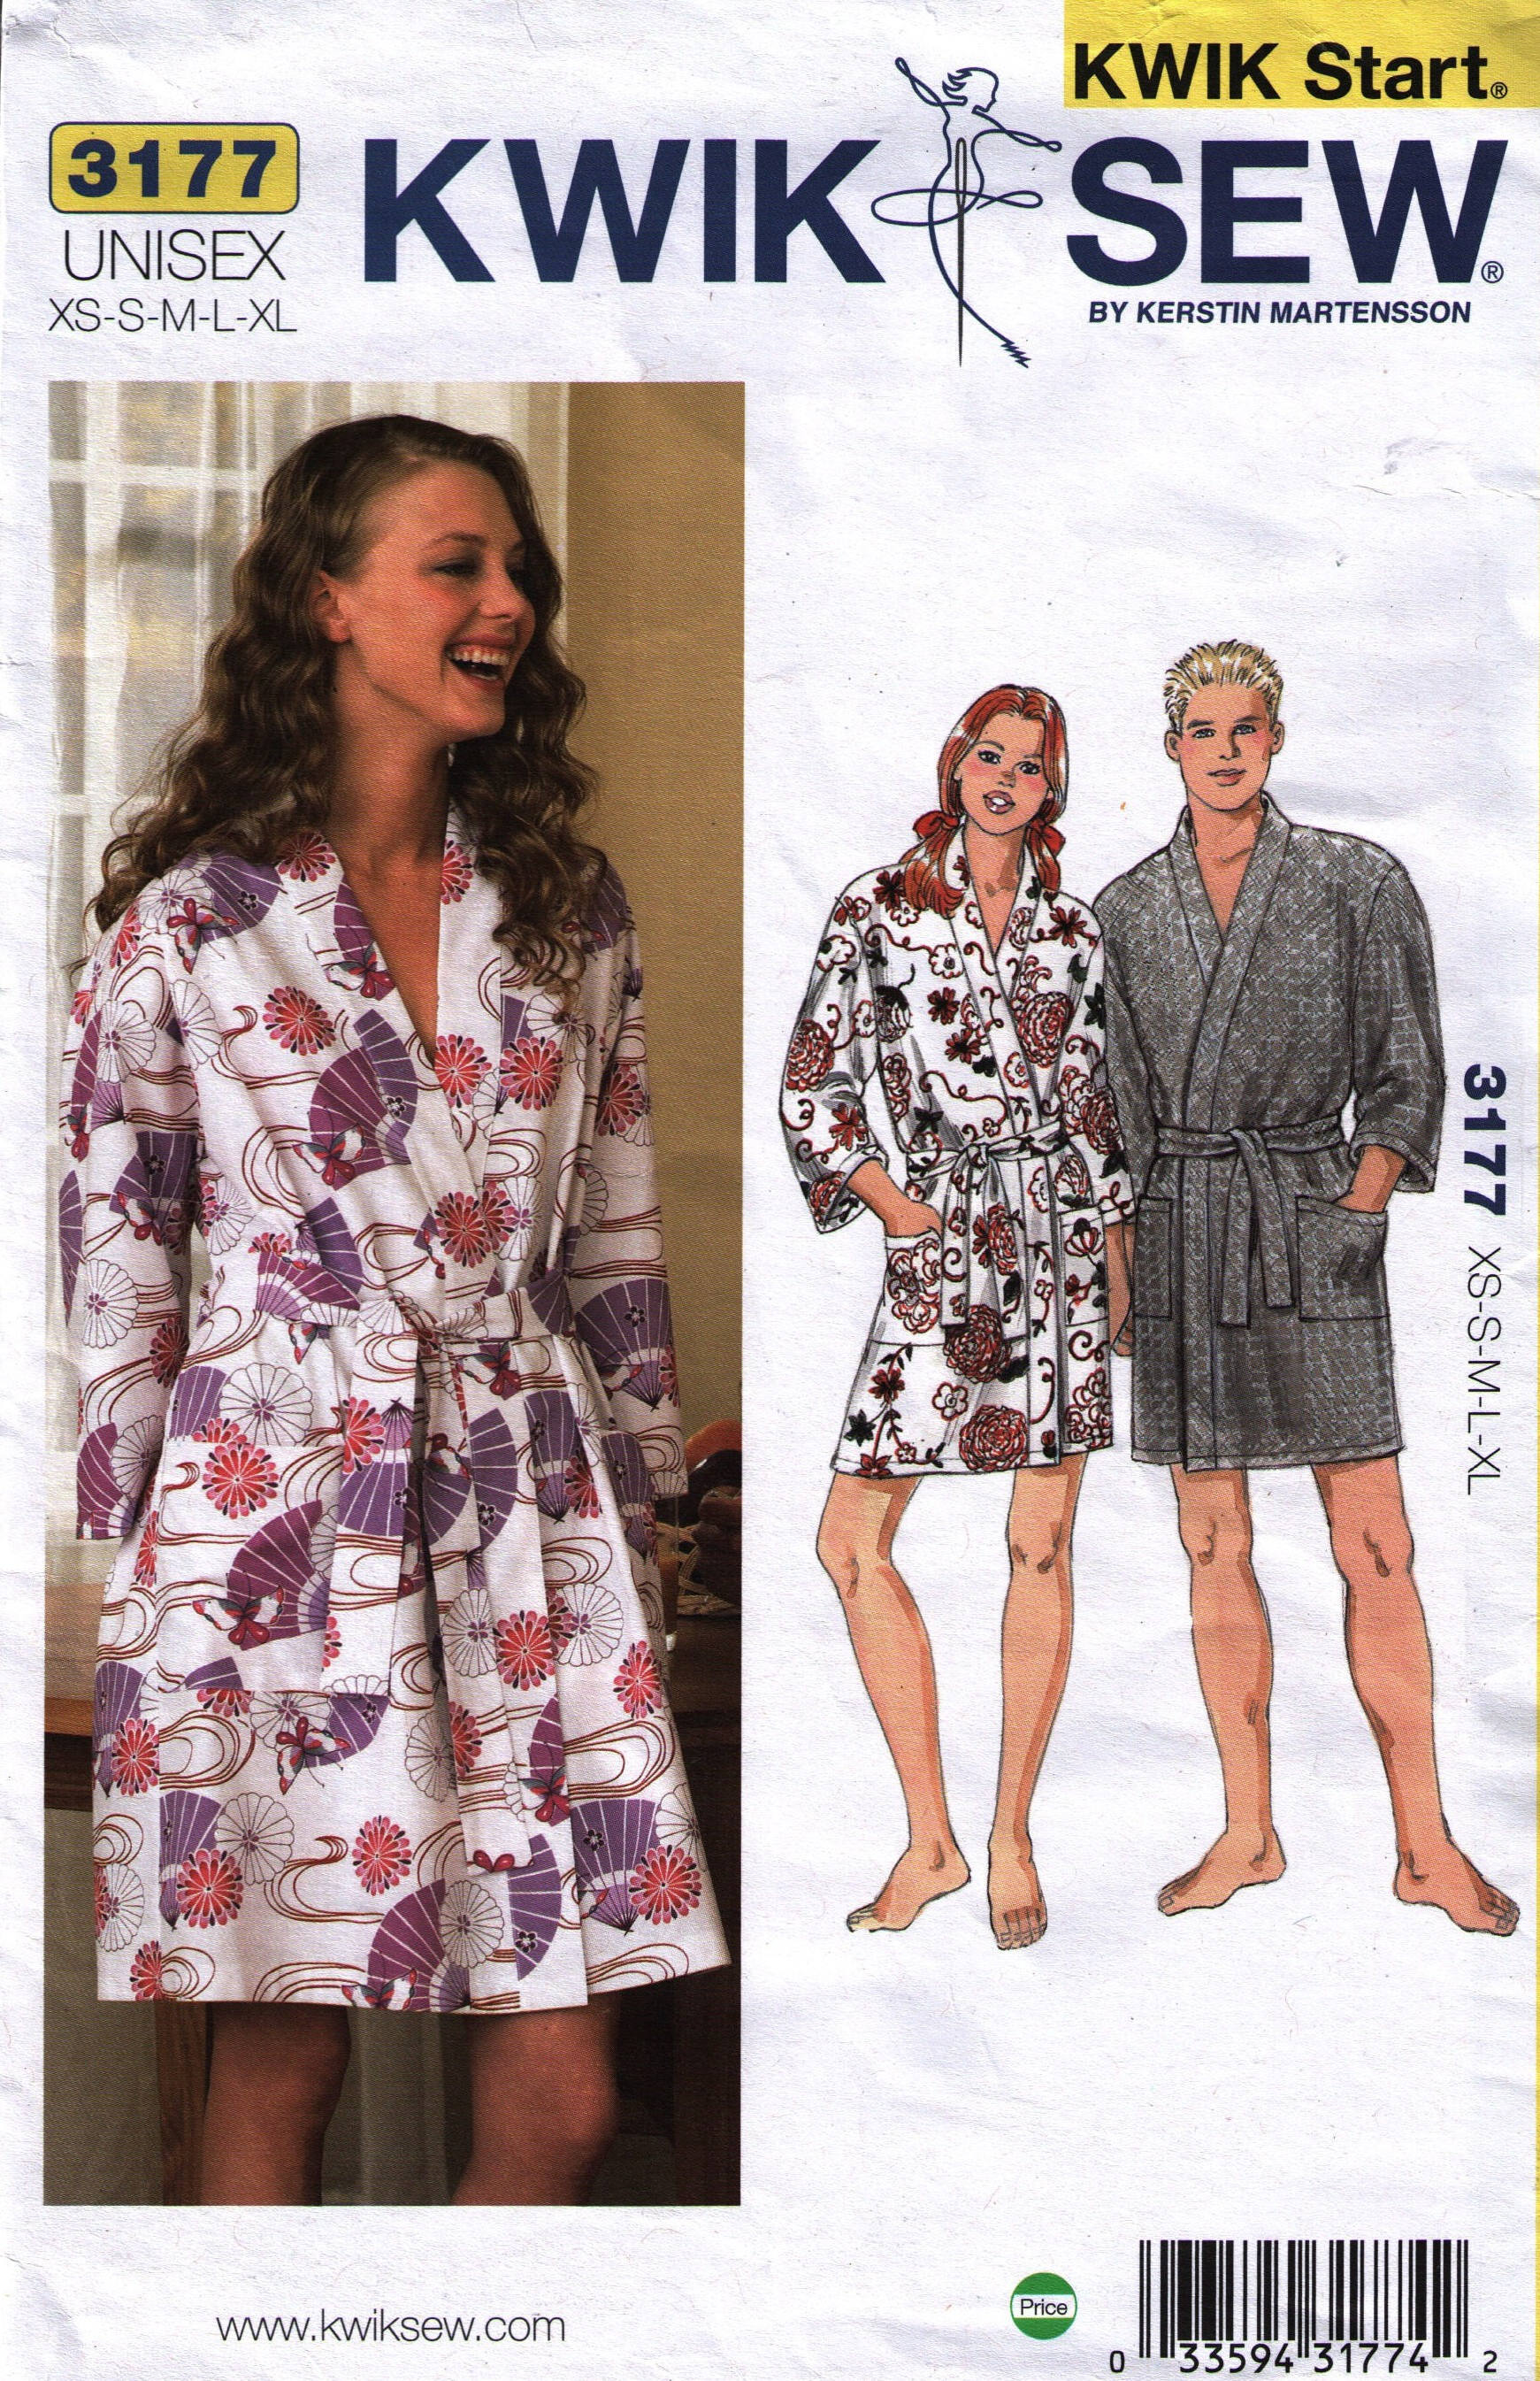 Kwik sew patterns overdressed for life until now jeuxipadfo Gallery